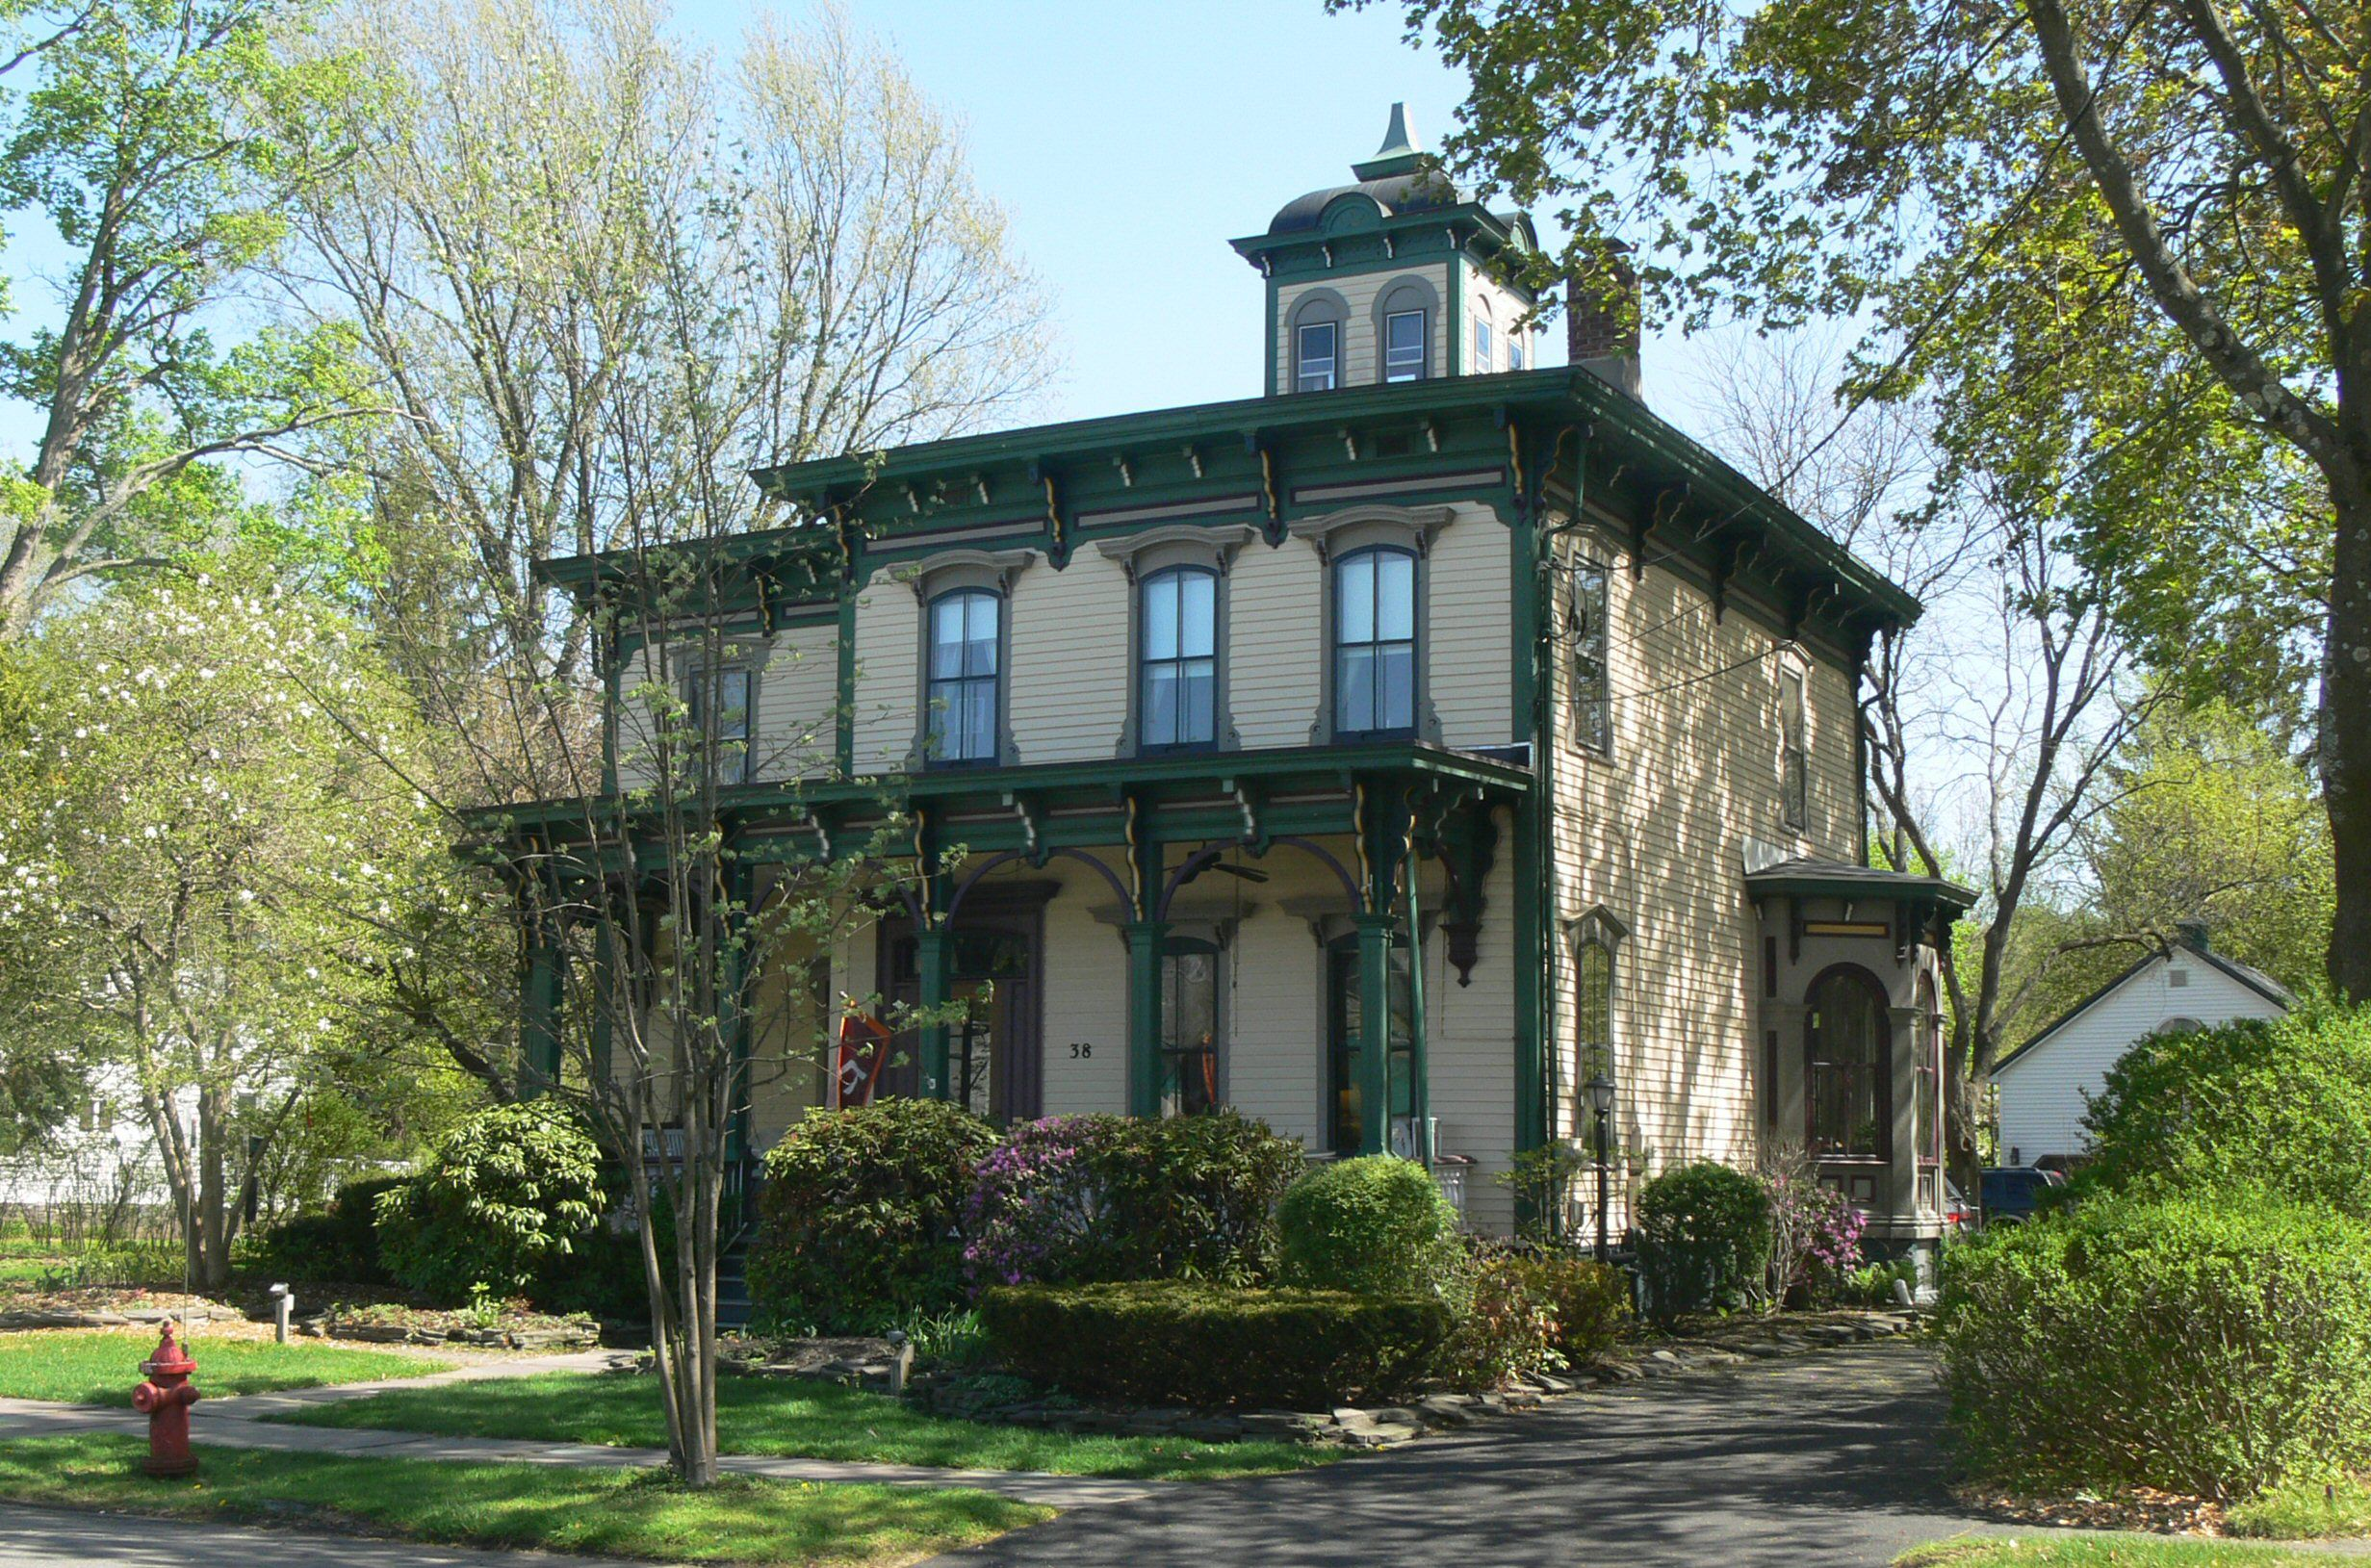 two story, squarish house, flat roof with cupola, flat front porch roof, wide overhangs with brackets, trim colored green, siding cream-colored